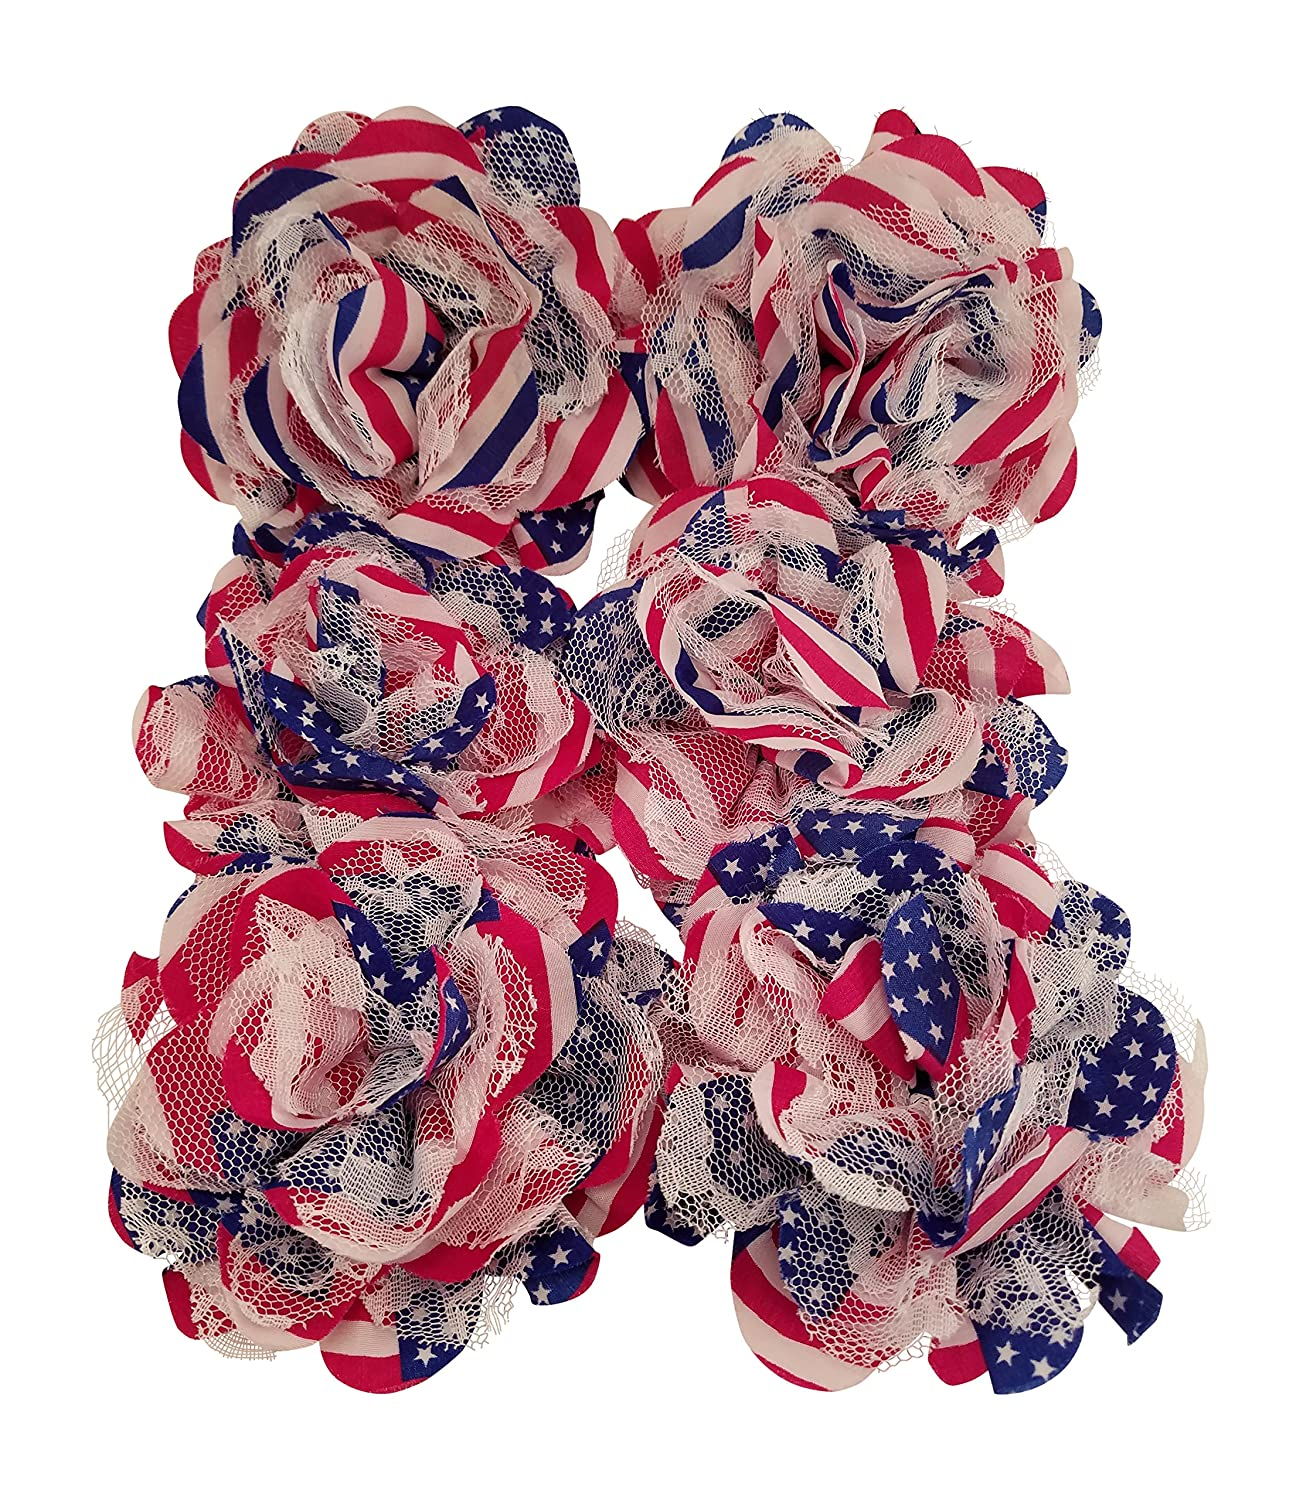 Chiffon Fabric Flowers - Red White and Blue - Patriotic 4th of July Lace Flowers for Headbands, Decorations, or Crafts (Pack of 6) 3Cats Art Supplies